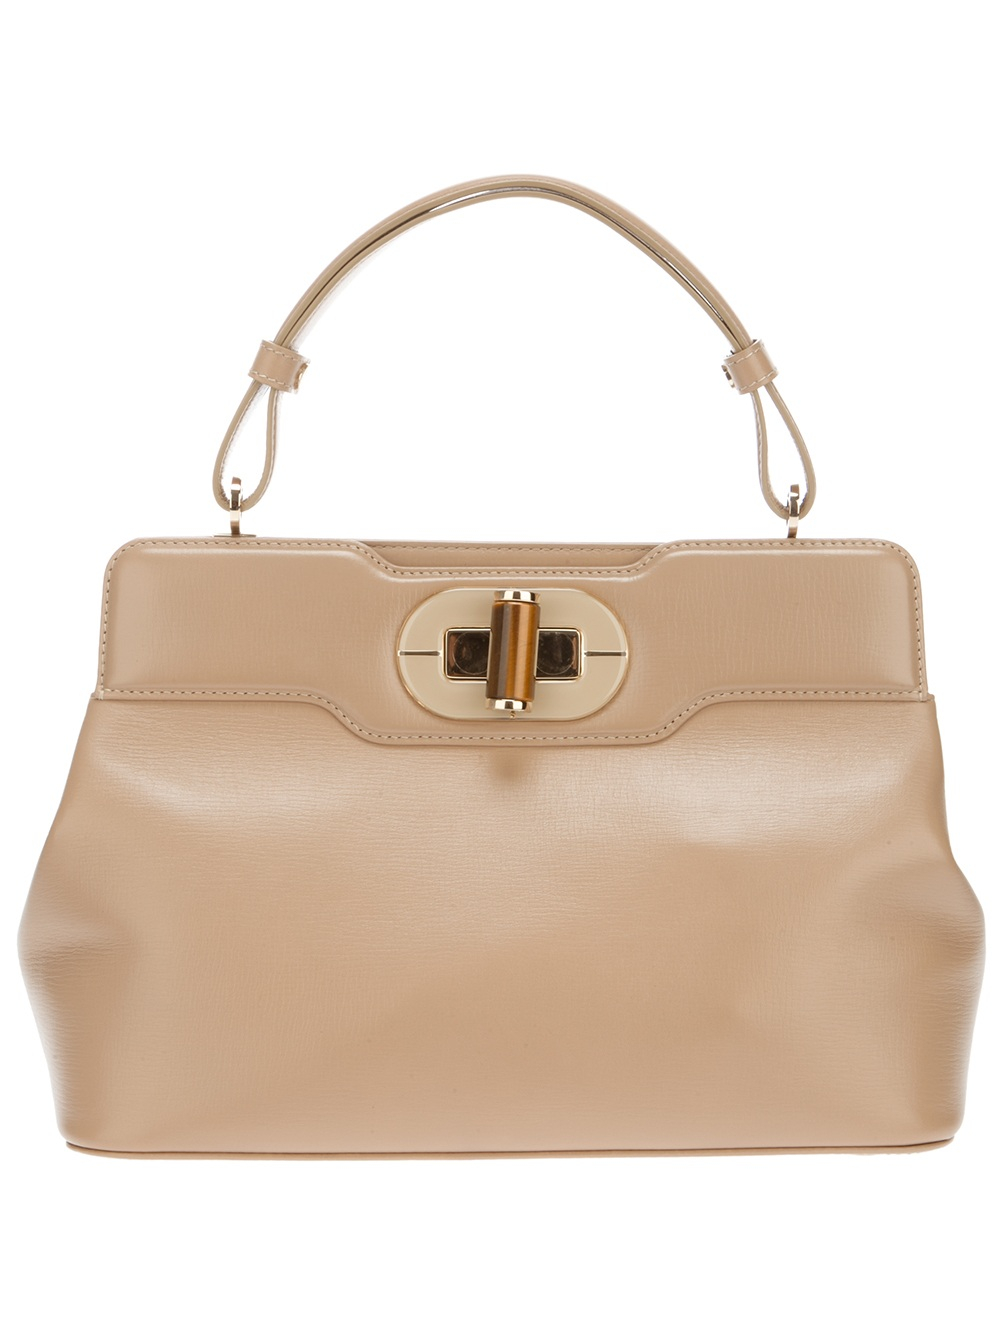 BVLGARI I Rossellini Leather Tote in Natural